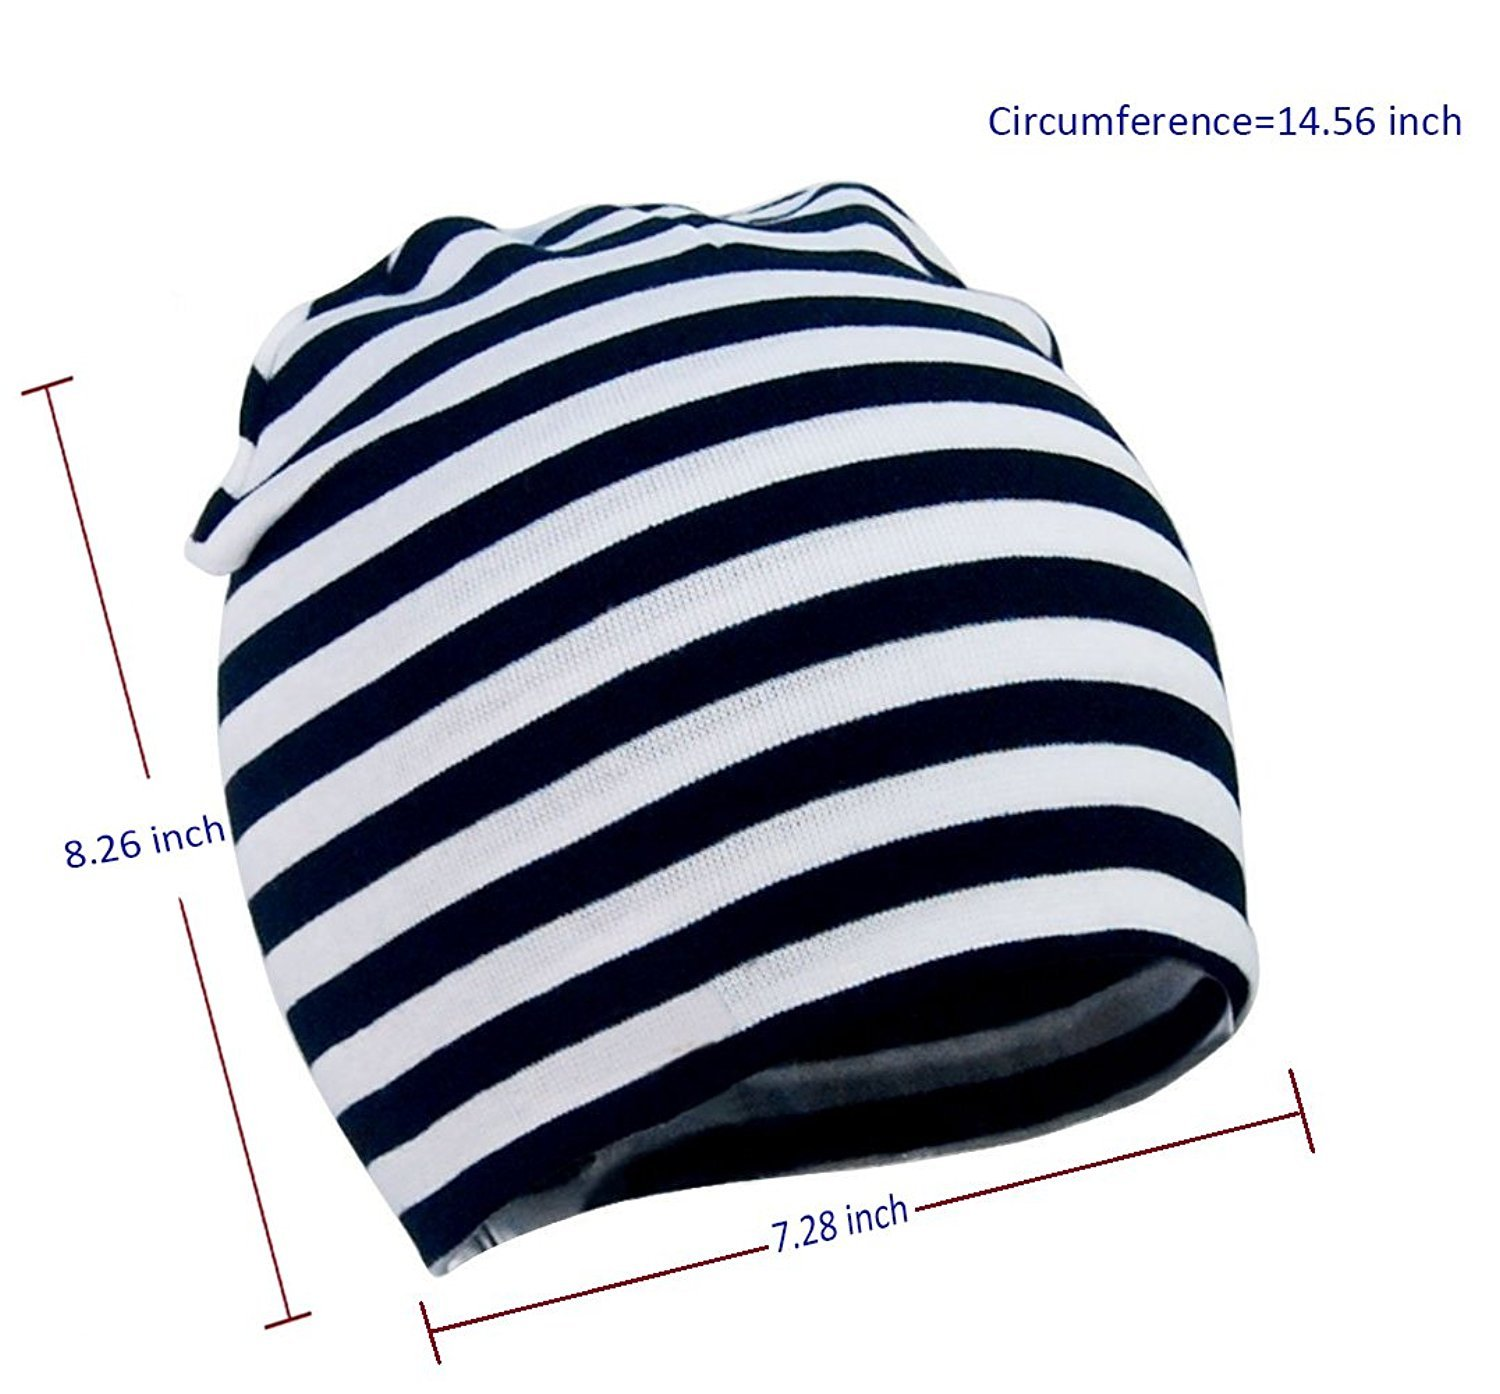 American Trends Toddler Infant Cotton Hat Unisex Knit Stretchy Baby Caps Casual Newborn Kids Lovely Soft Warm Beanies A 3 Pack-Black Stripe Grey Large (1-4 Years) by American Trends (Image #2)